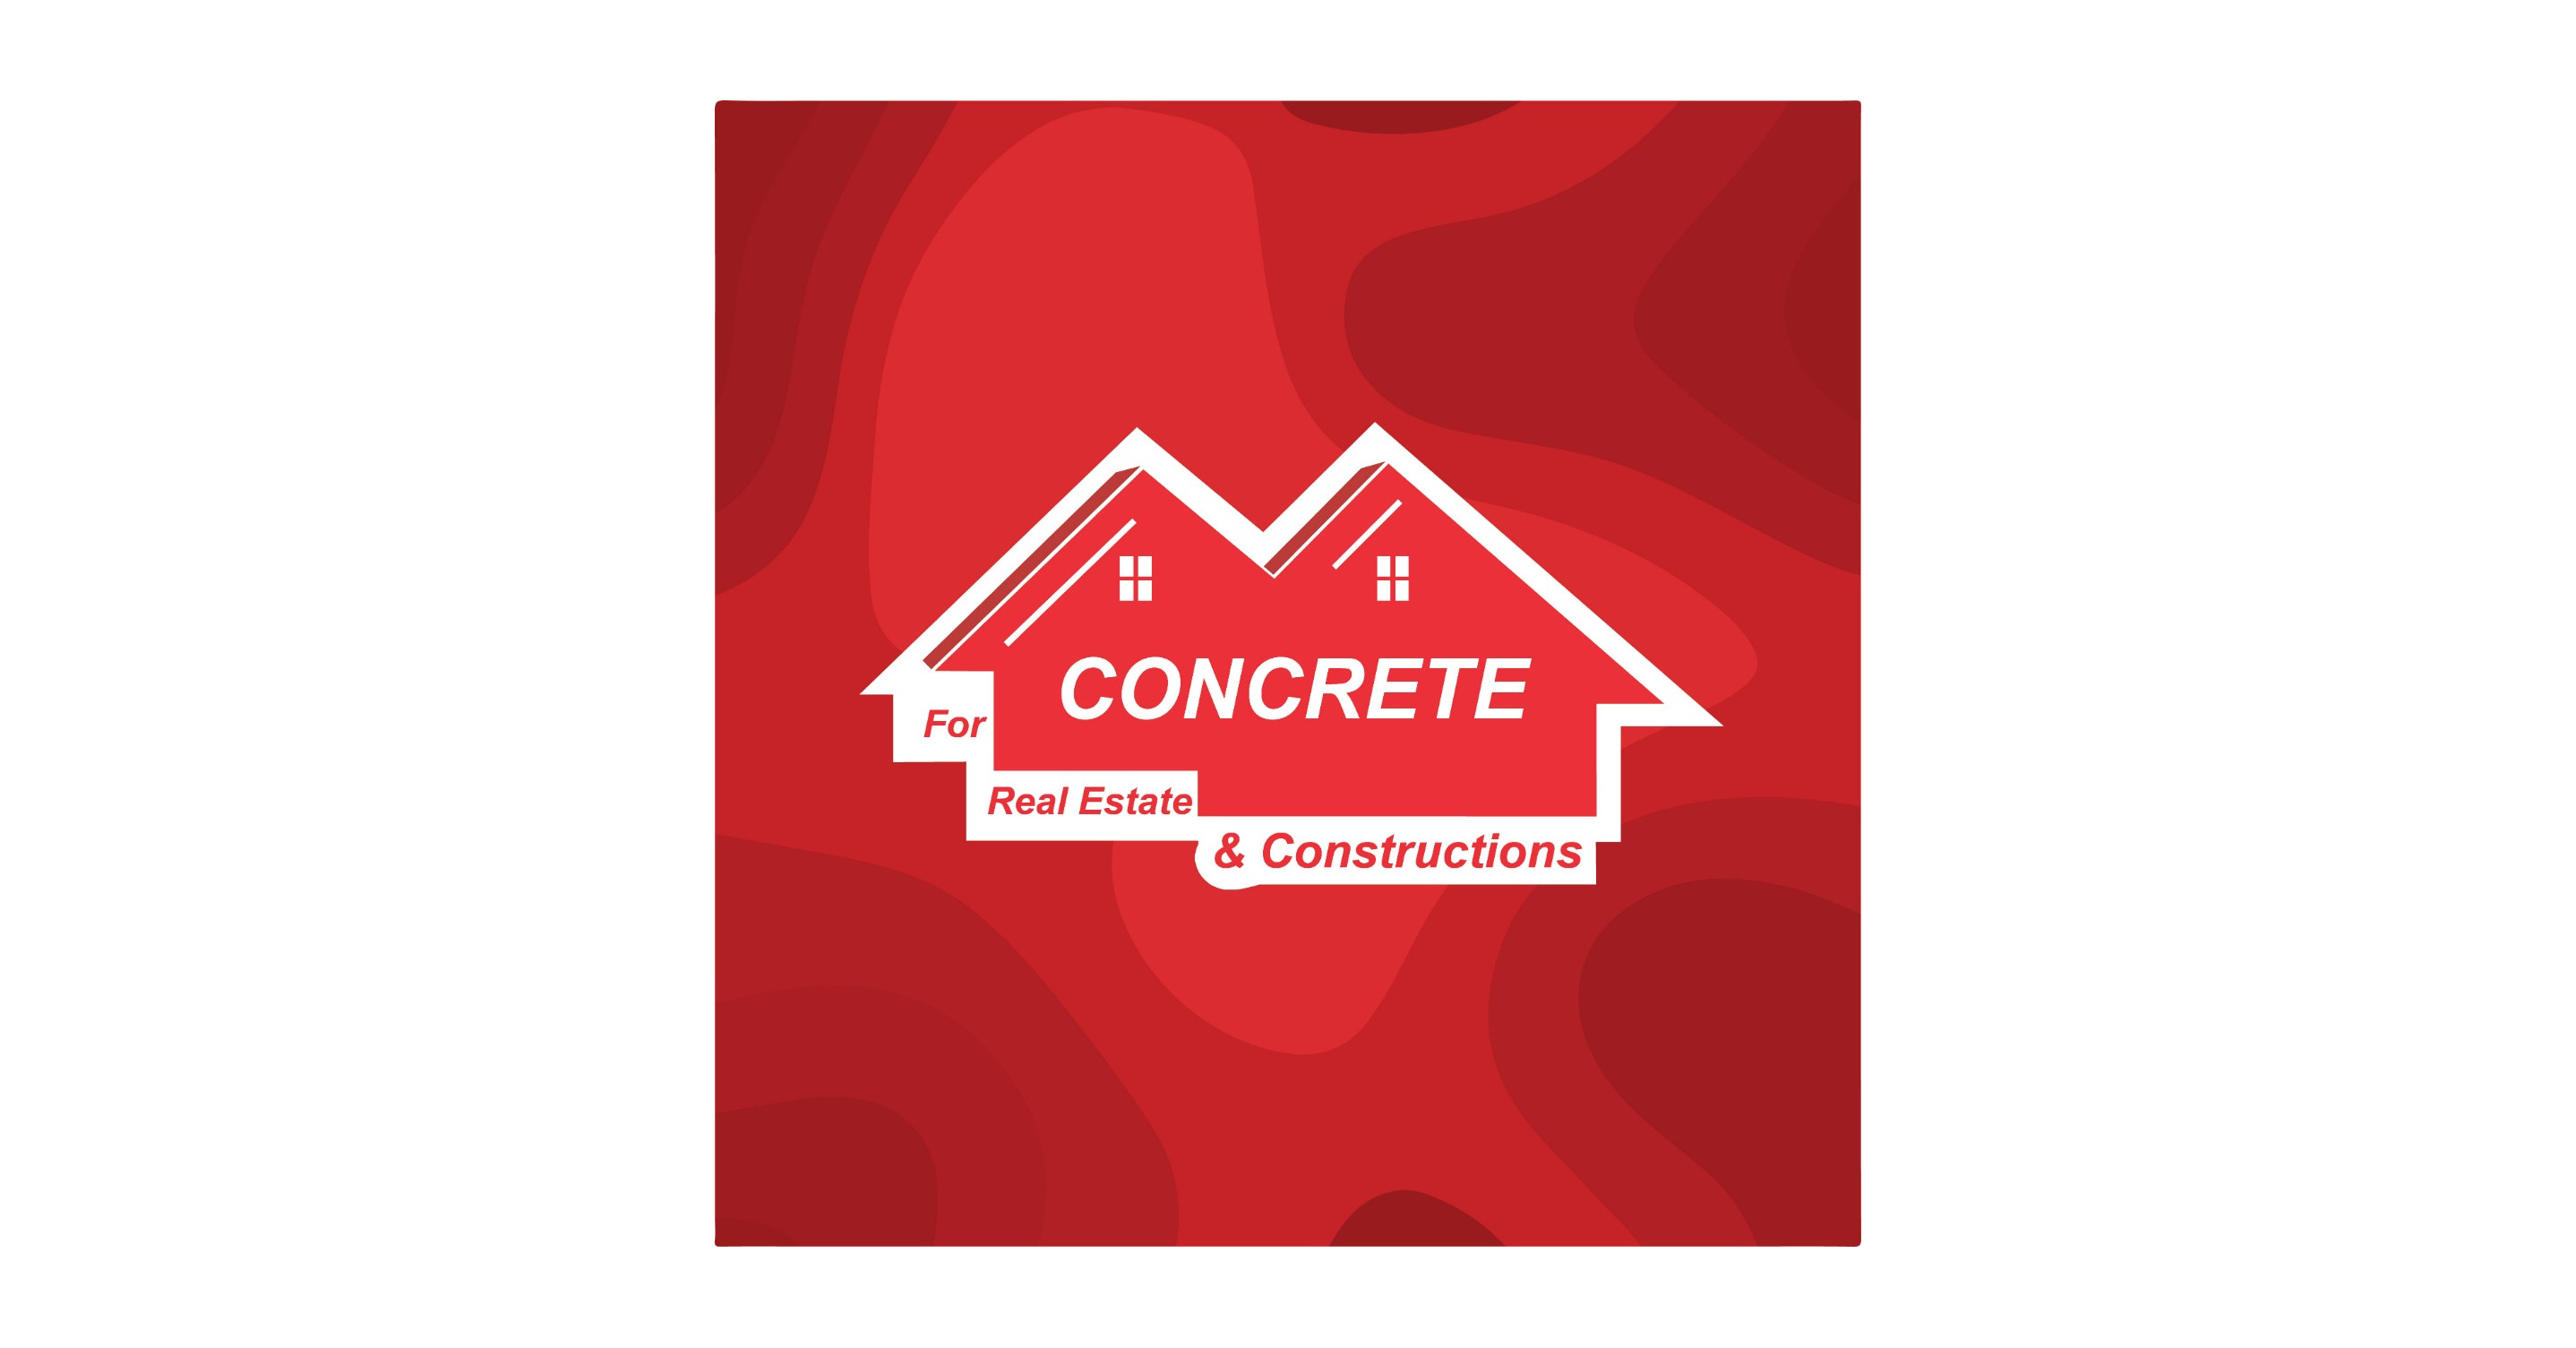 صورة Job: Real Estate Sales Specialist at Concrete For Real Estate in Giza, Egypt